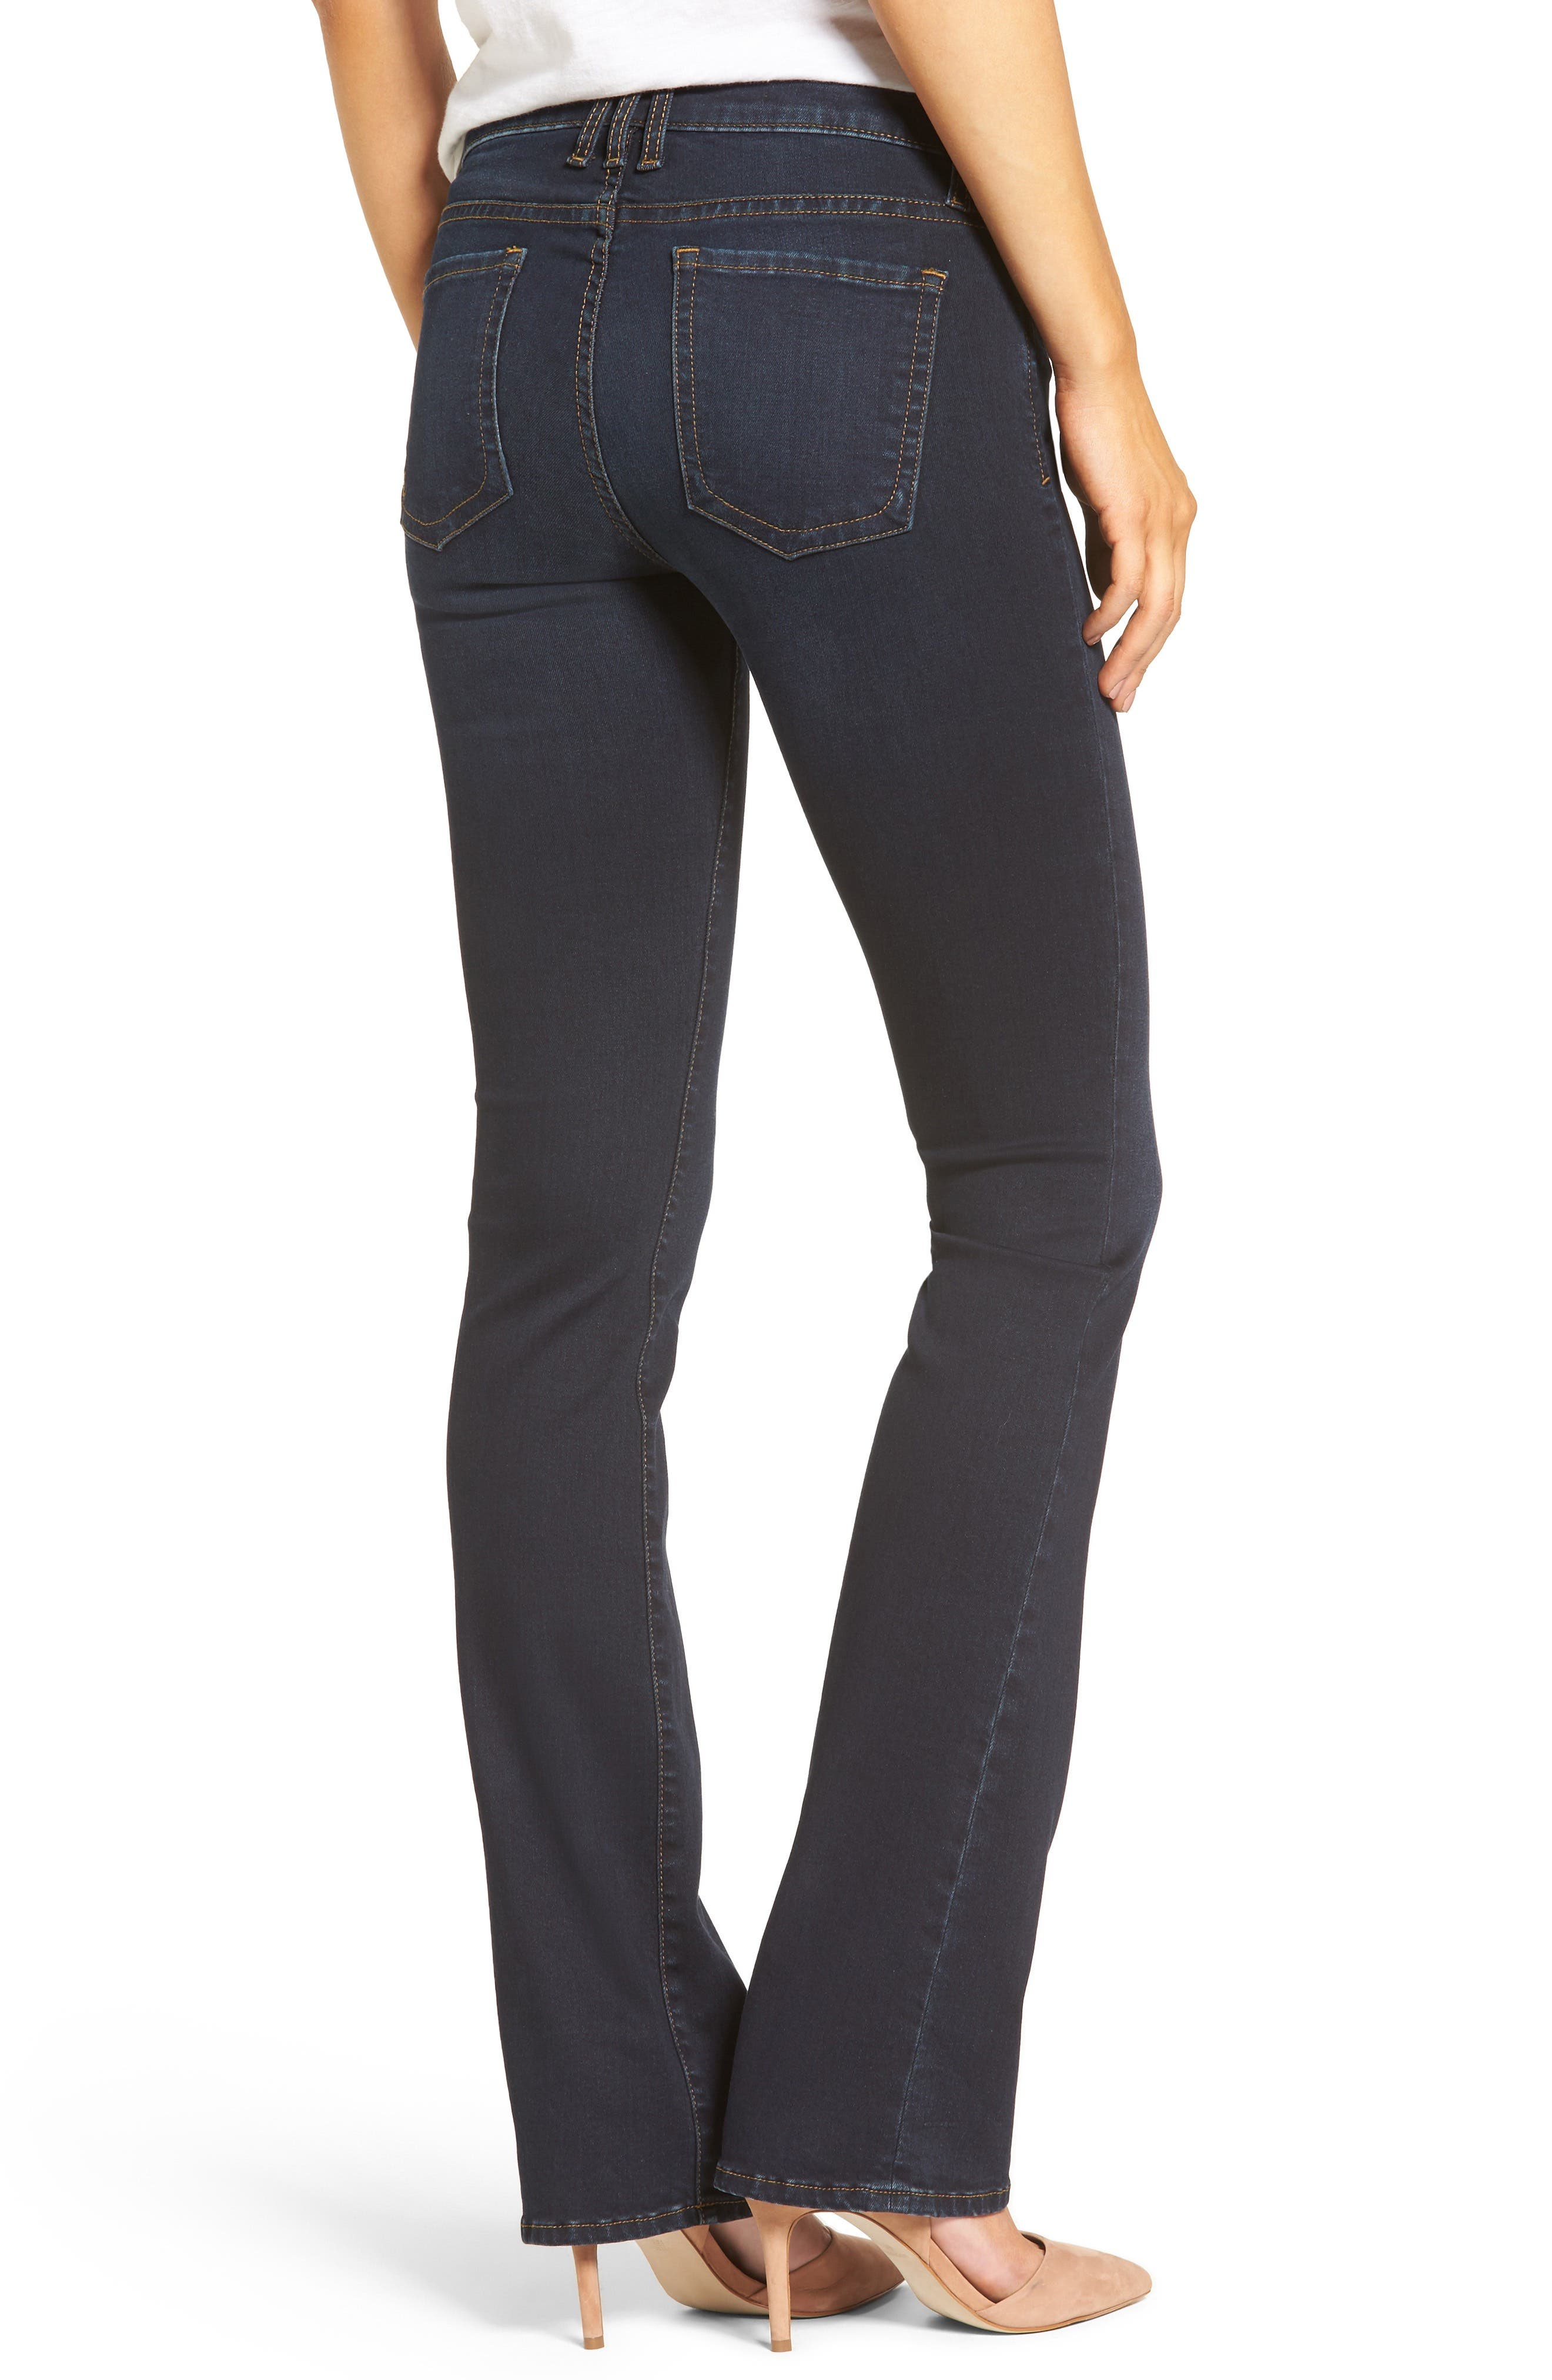 Alternate Image 2  - KUT from the Kloth Natalie Stretch Bootleg Jeans (Immeasurable) (Regular & Petite)